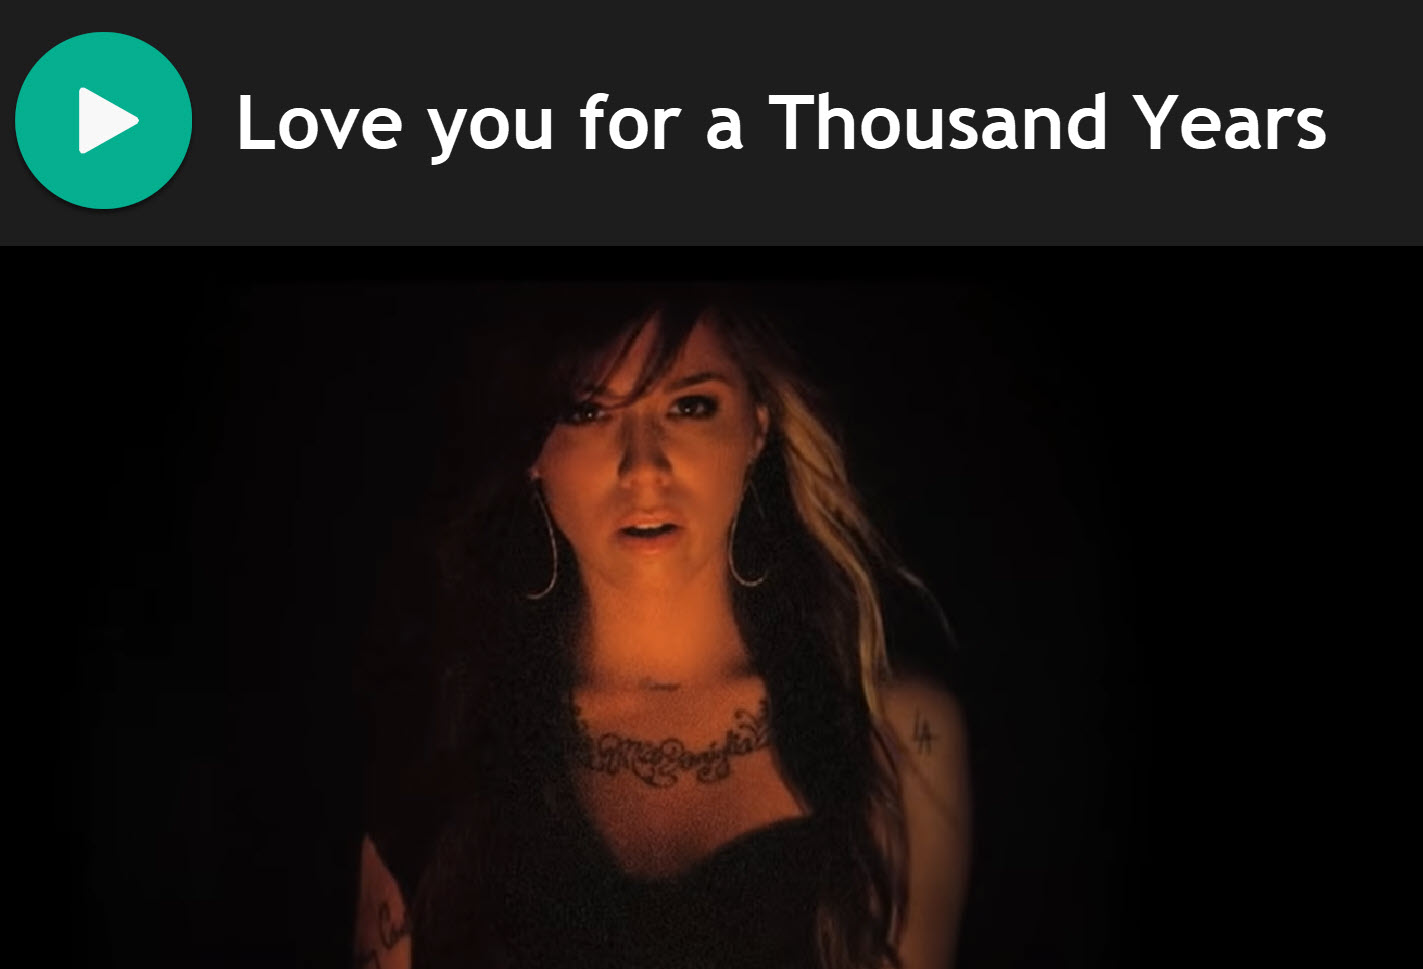 Love you for a Thousand Years by Christina Perri for Practice Chanter